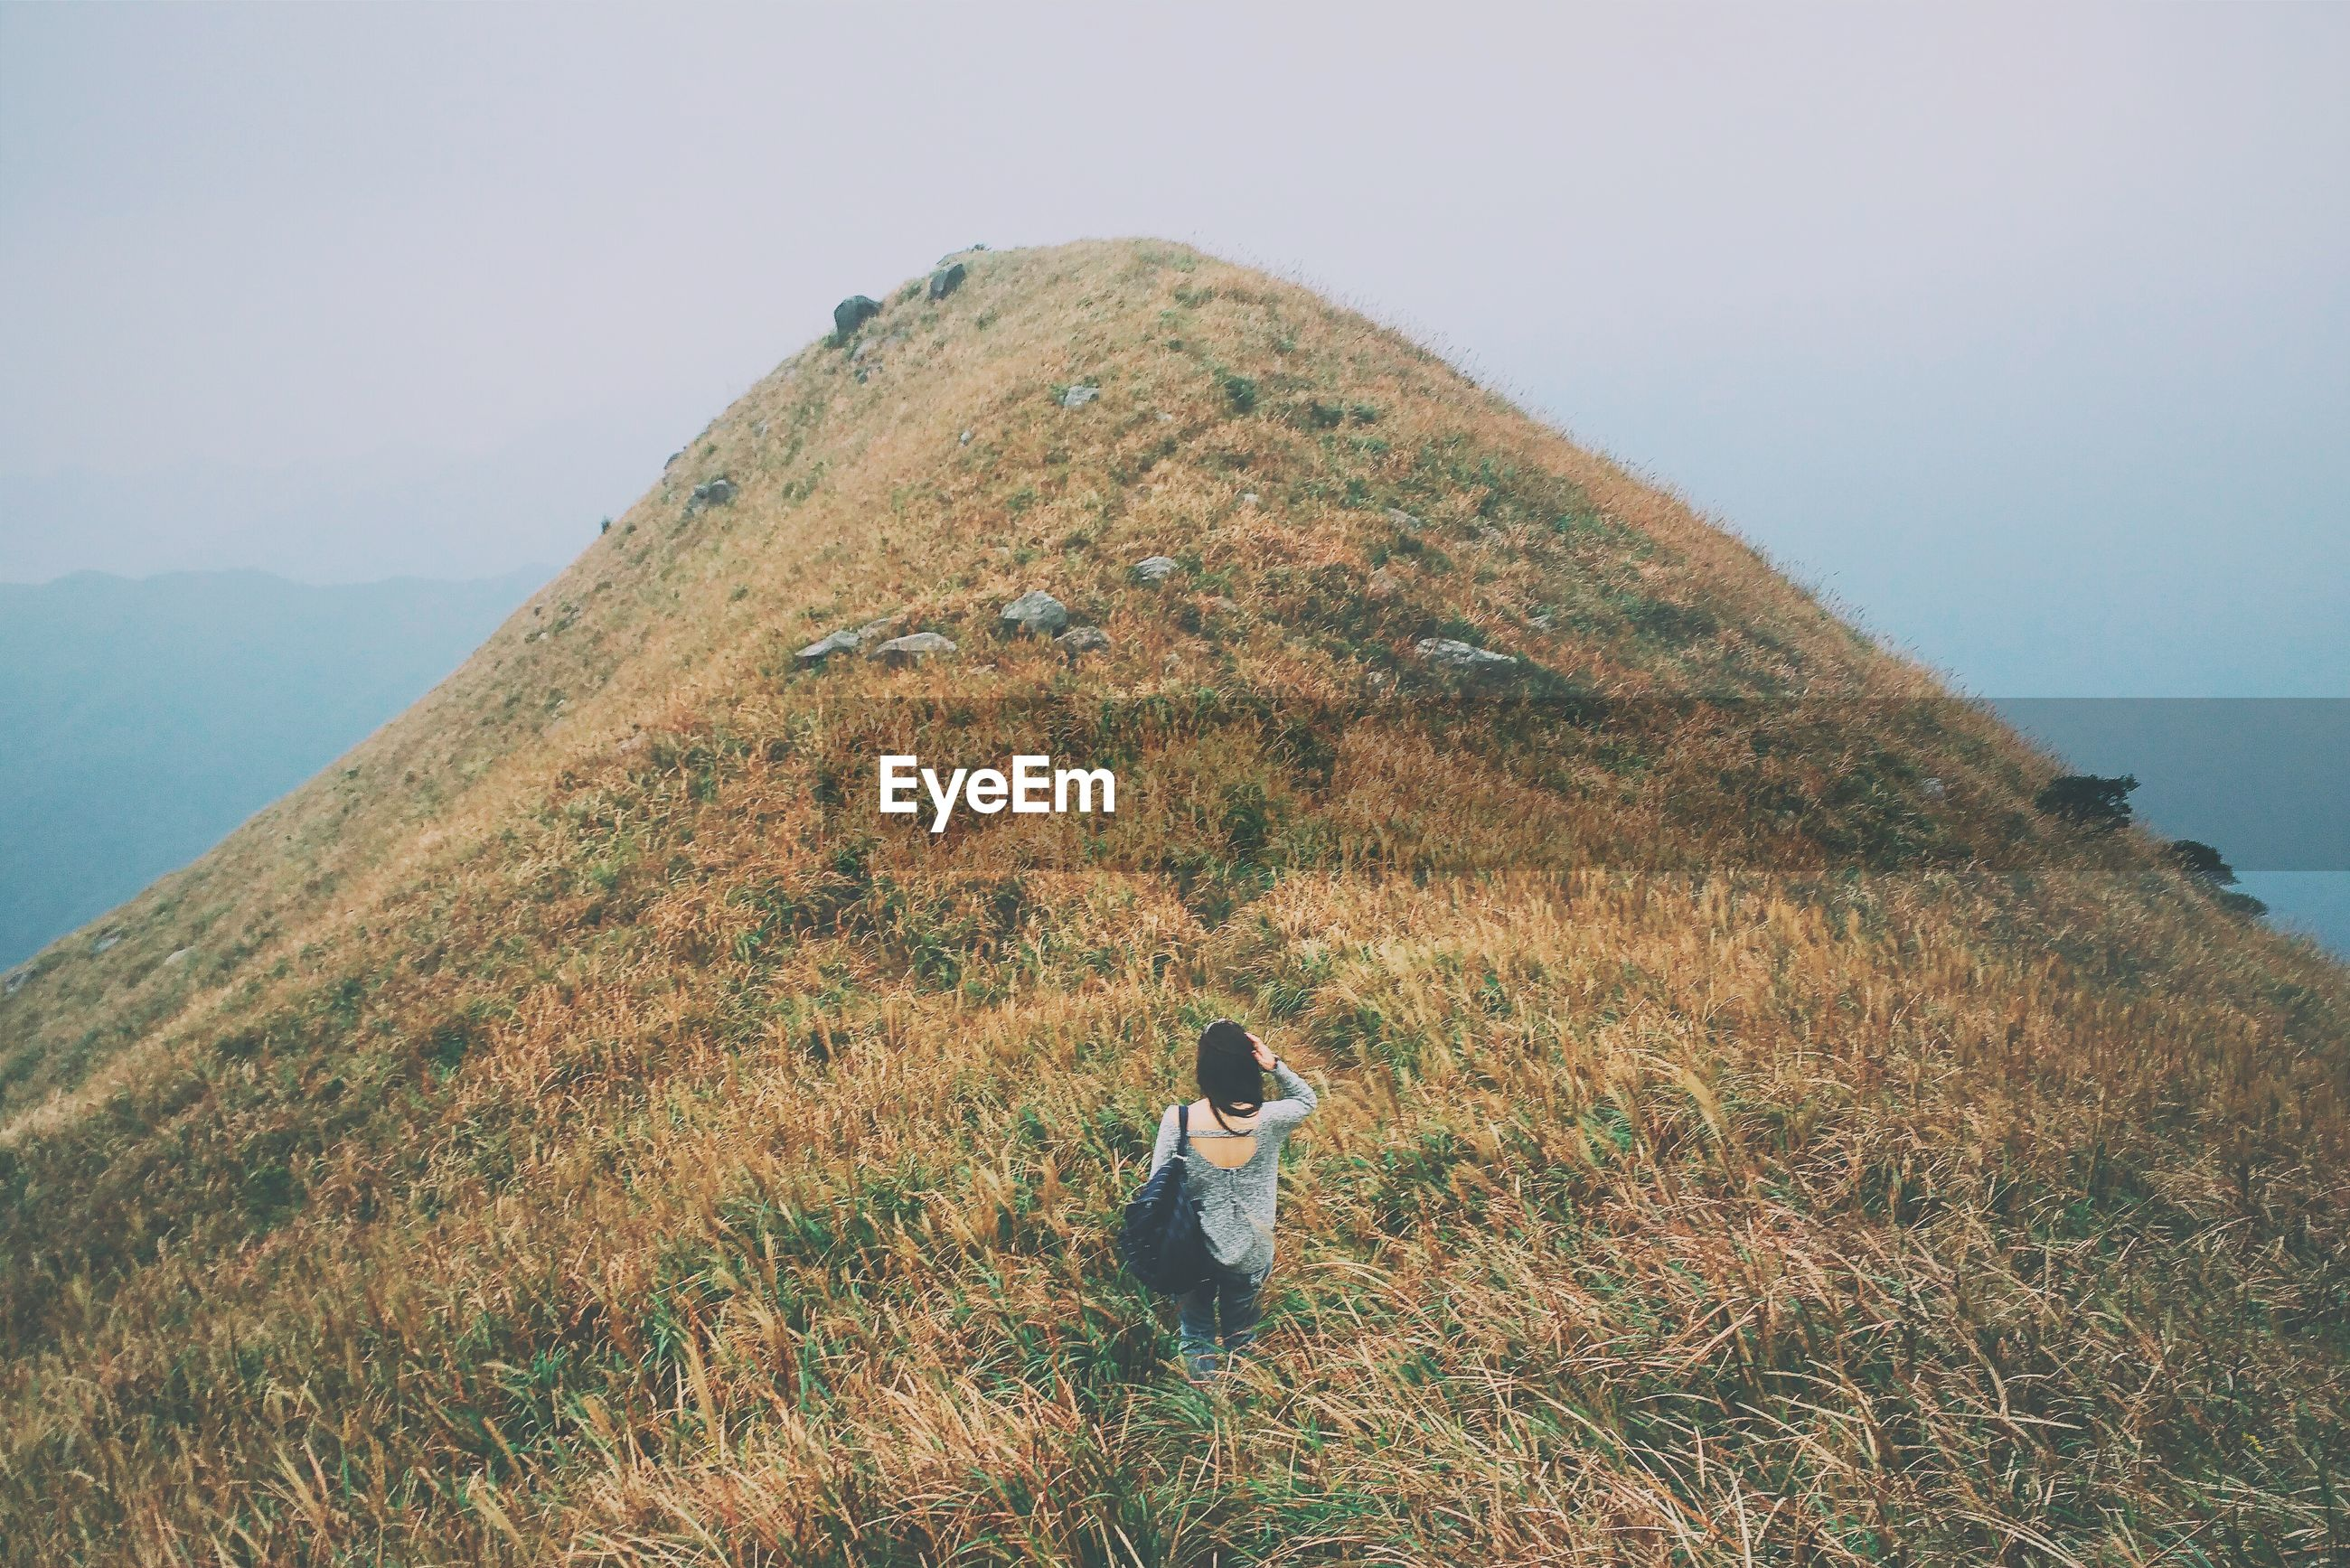 High angle view of woman standing on mountain against sky during foggy weather